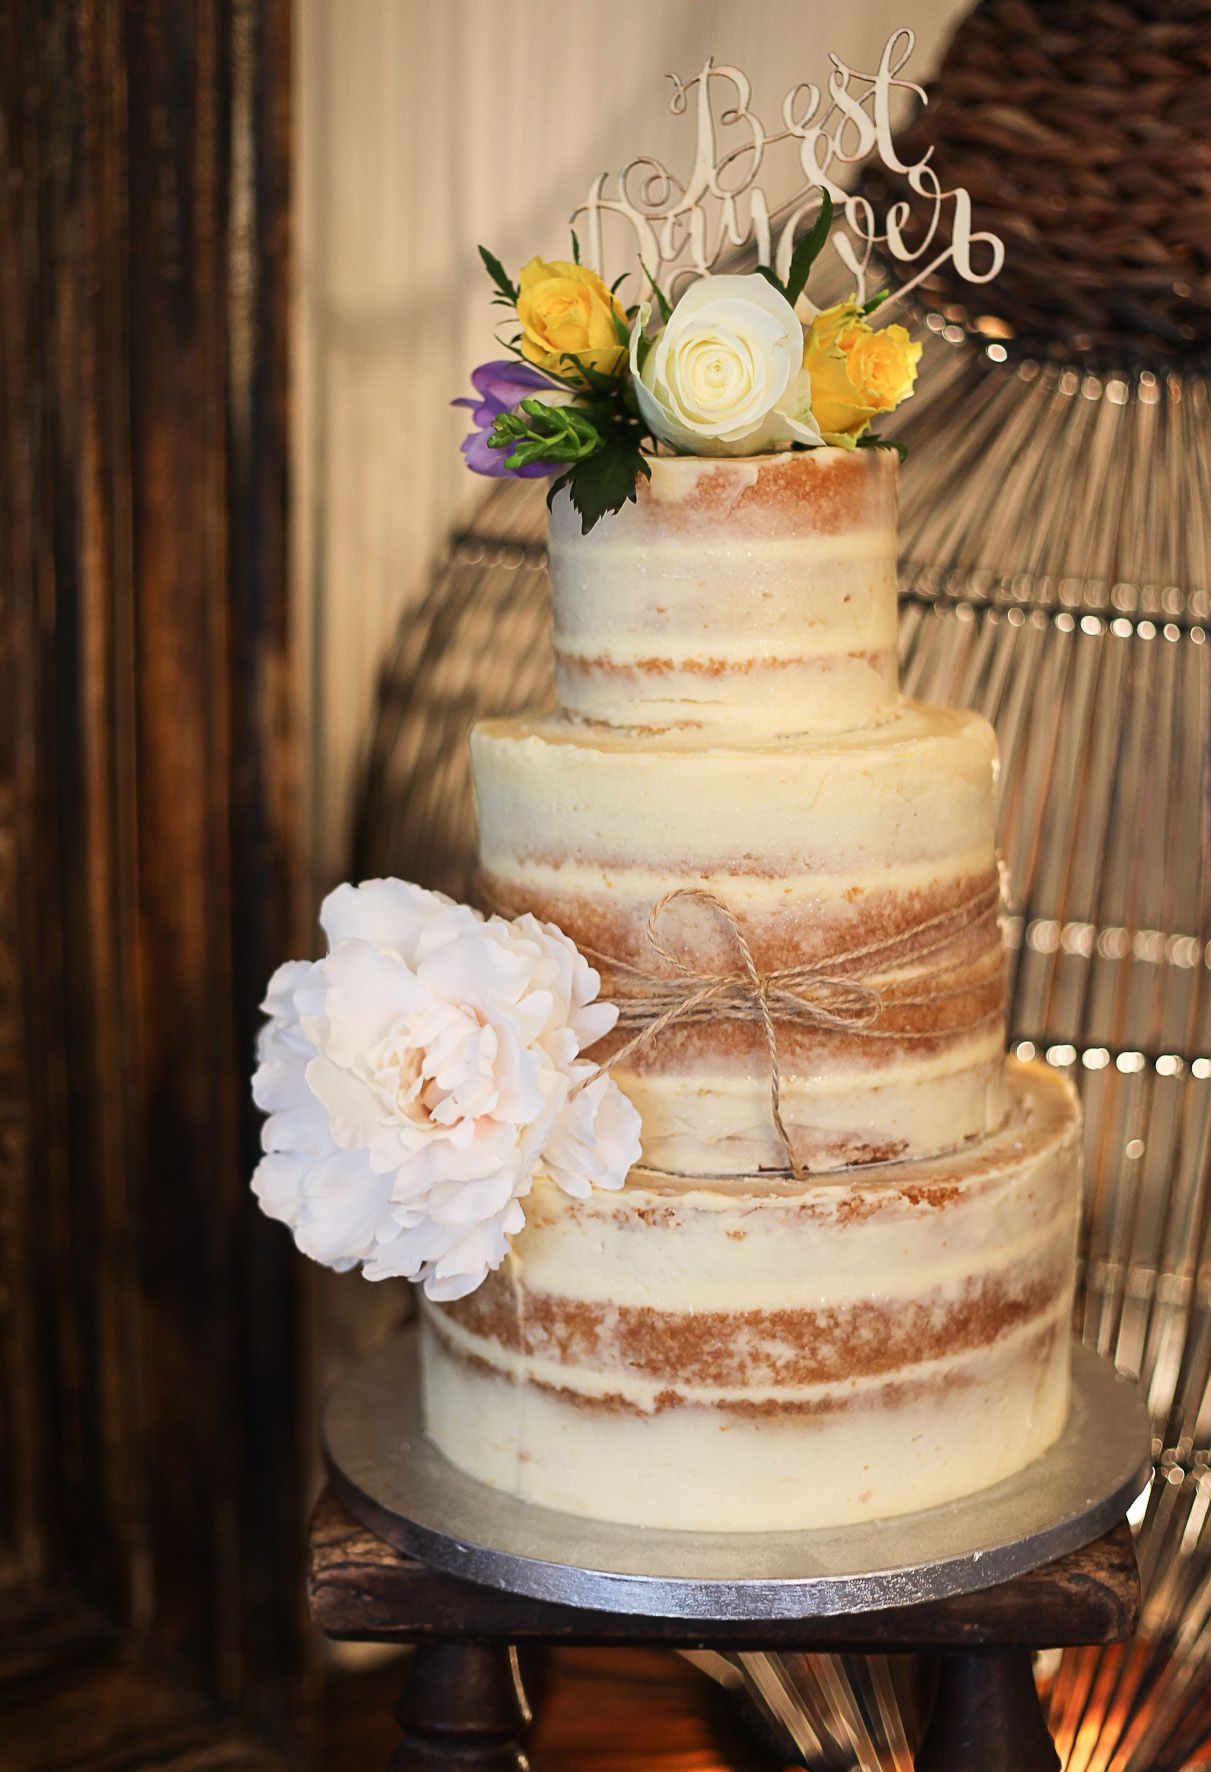 A Bespoke Cakes 3 Tier Rustic Semi Wedding Cake With Fresh Flowers And Burlap